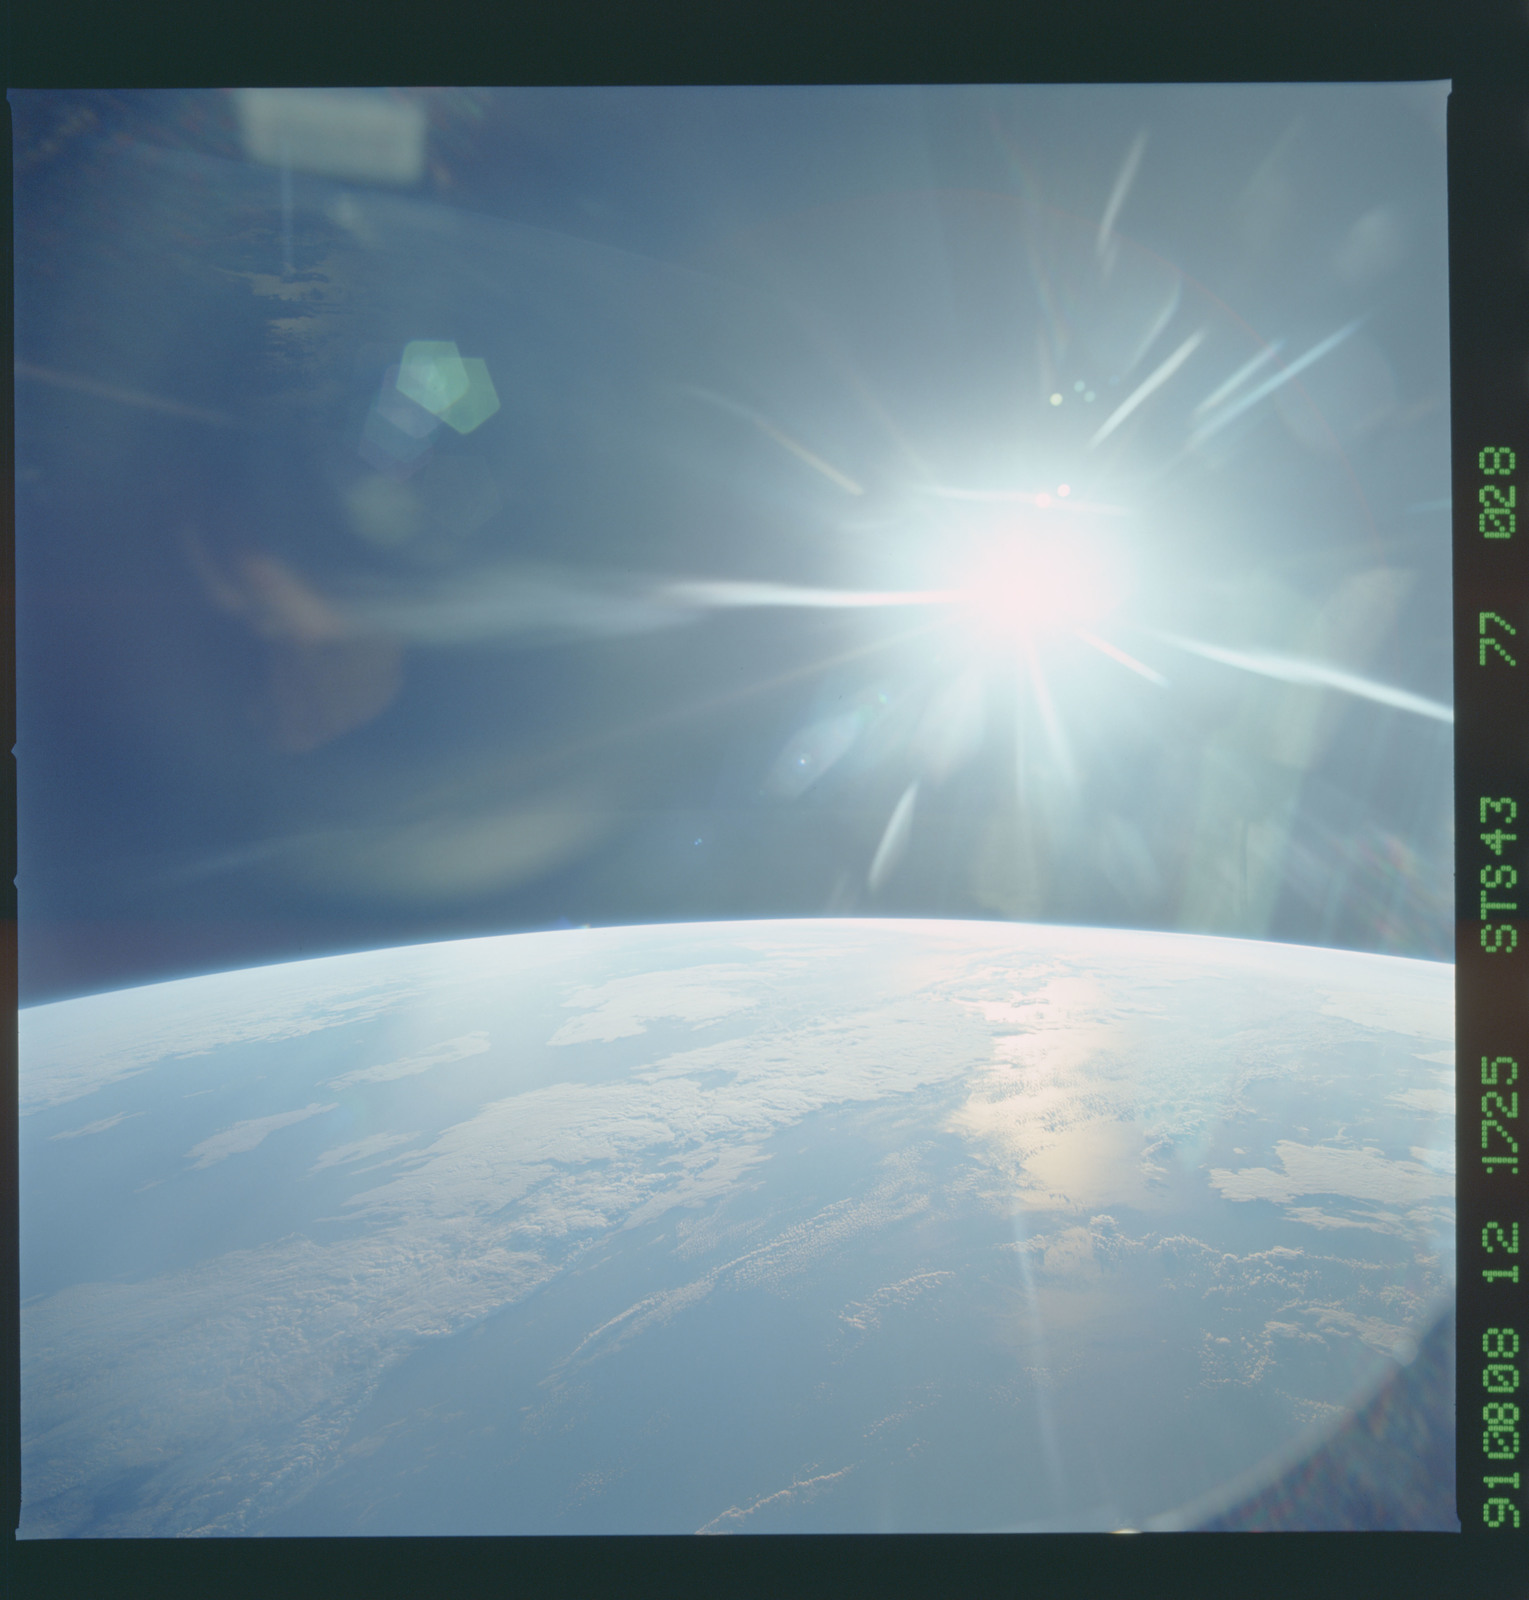 S43-77-028 - STS-043 - STS-43 earth observations